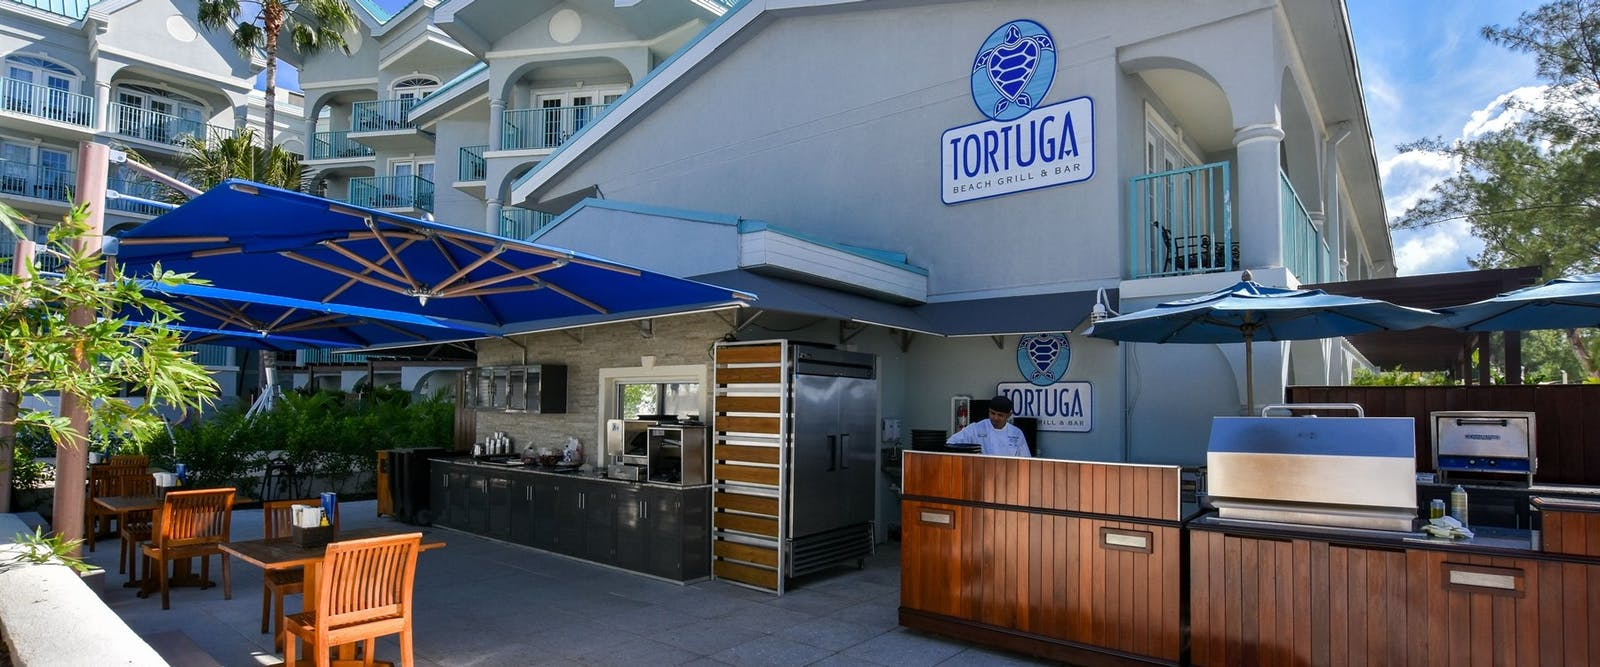 Tortgua Beach Bar and Grill at The Westin Grand Cayman Seven Mile Beach Resort & Spa, Cayman Islands